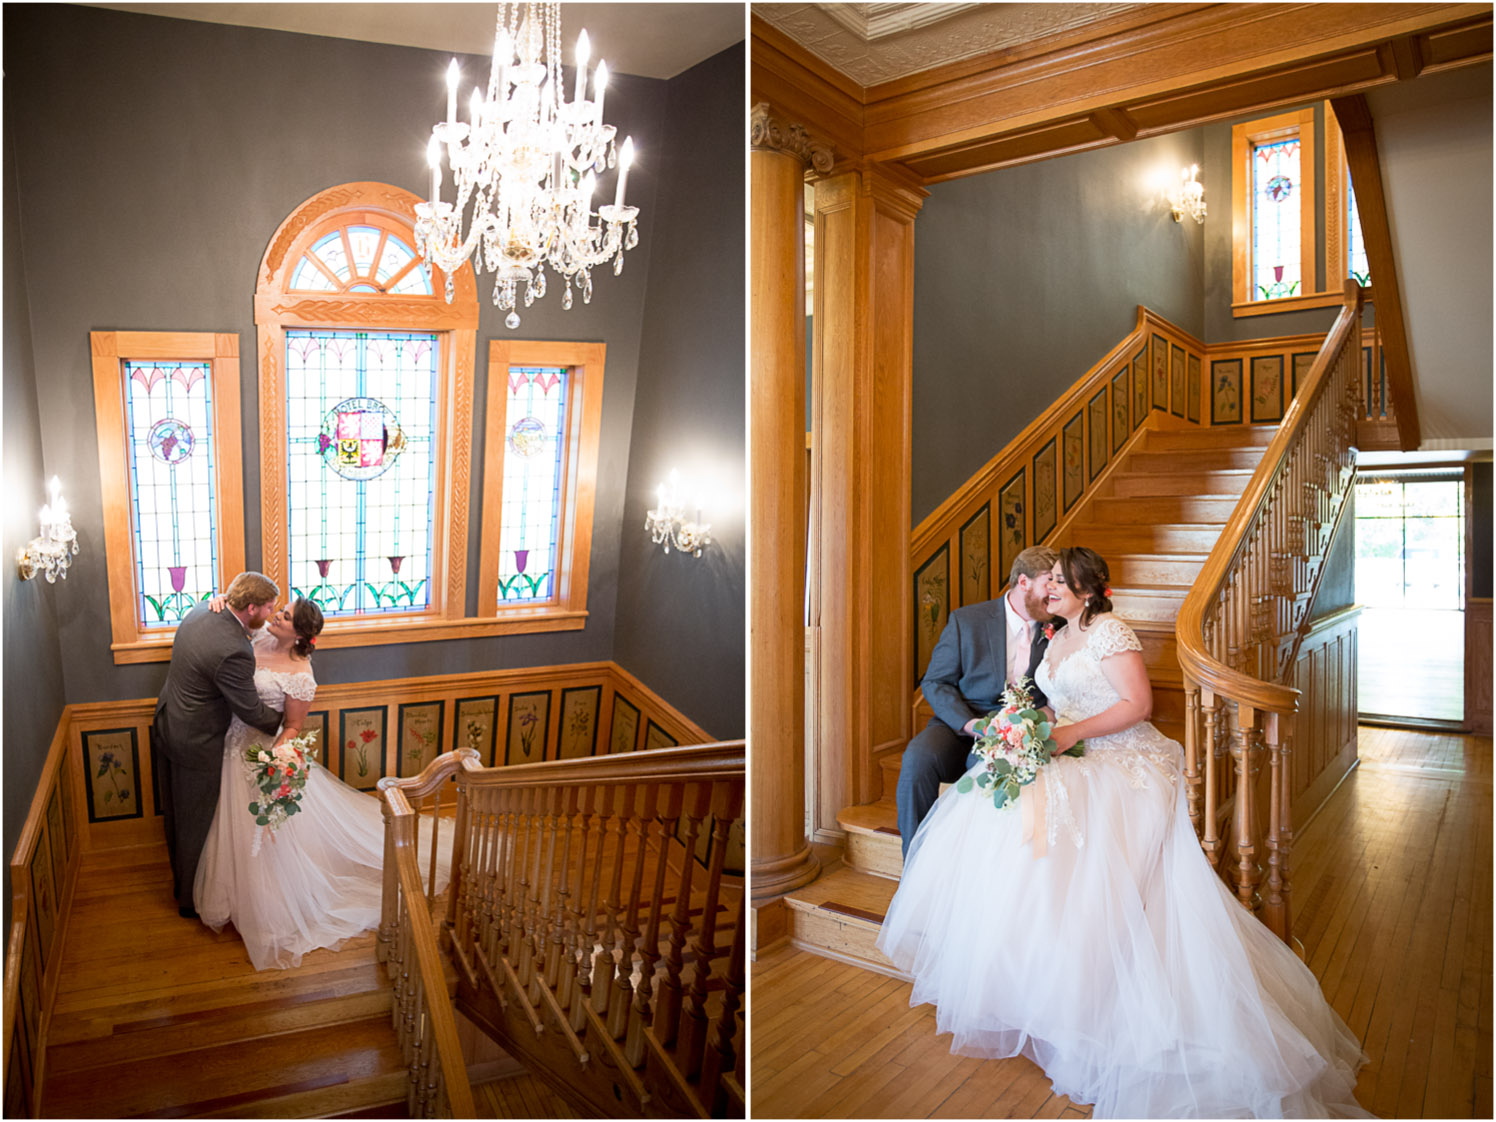 13-hotel-broz-new-prague-mn-minnesota-wedding-venue-photographer-styled-shoot-grande-staircase-bride-groom-first-look-casual-fun-portraits-victorian-themes-mahonen-photography.jpg